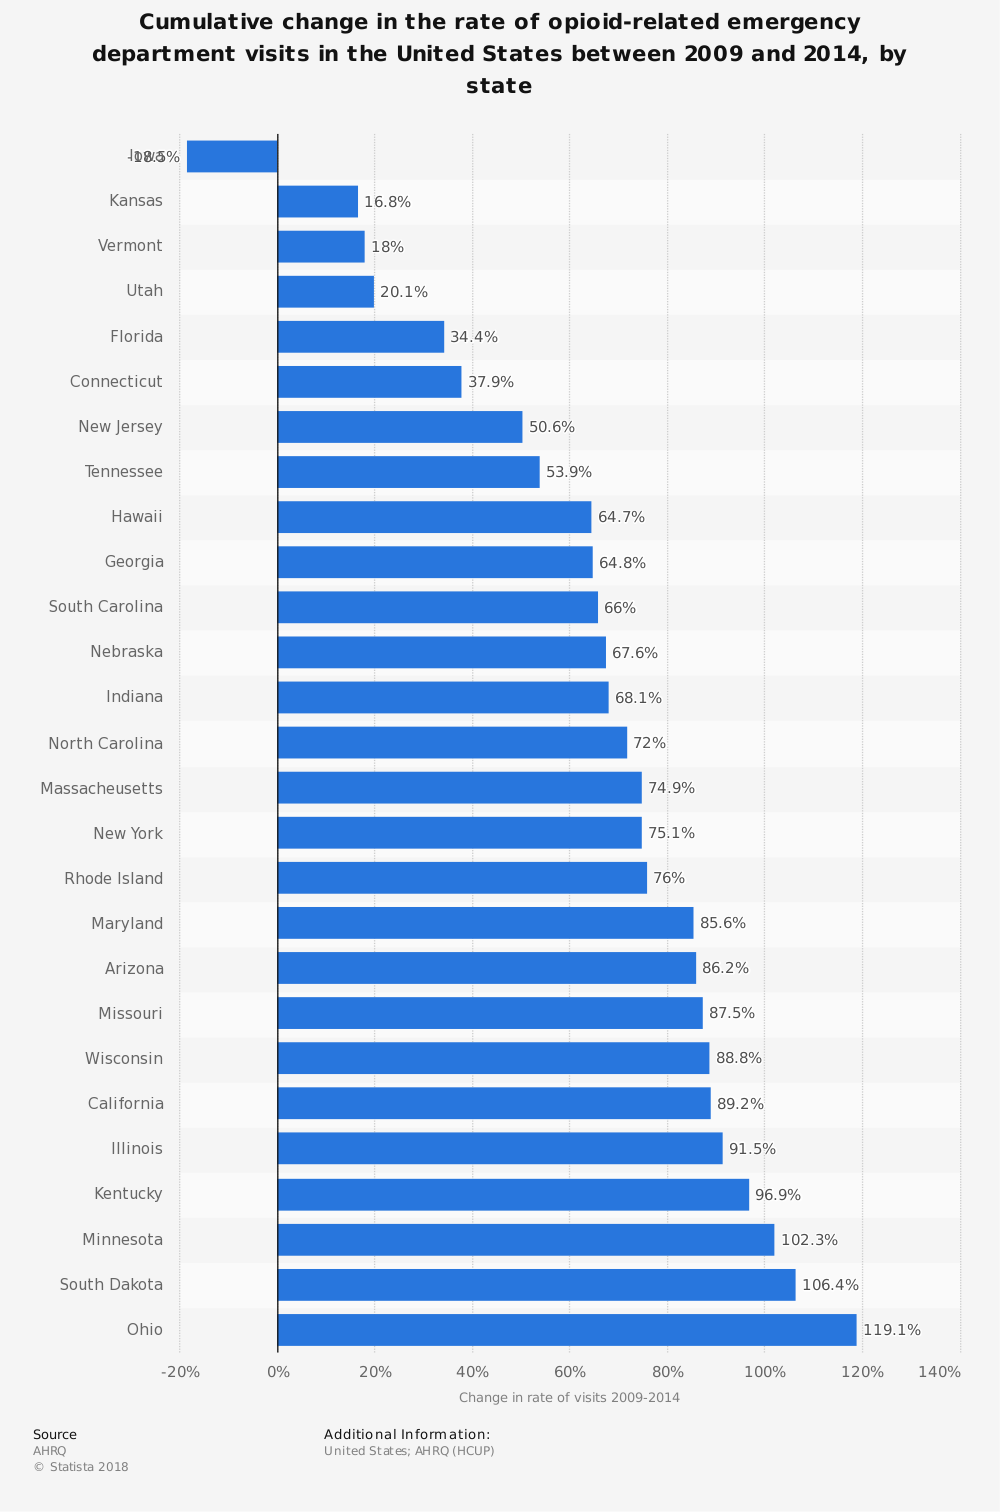 Statistic: Cumulative change in the rate of opioid-related emergency department visits in the United States between 2009 and 2014, by state | Statista